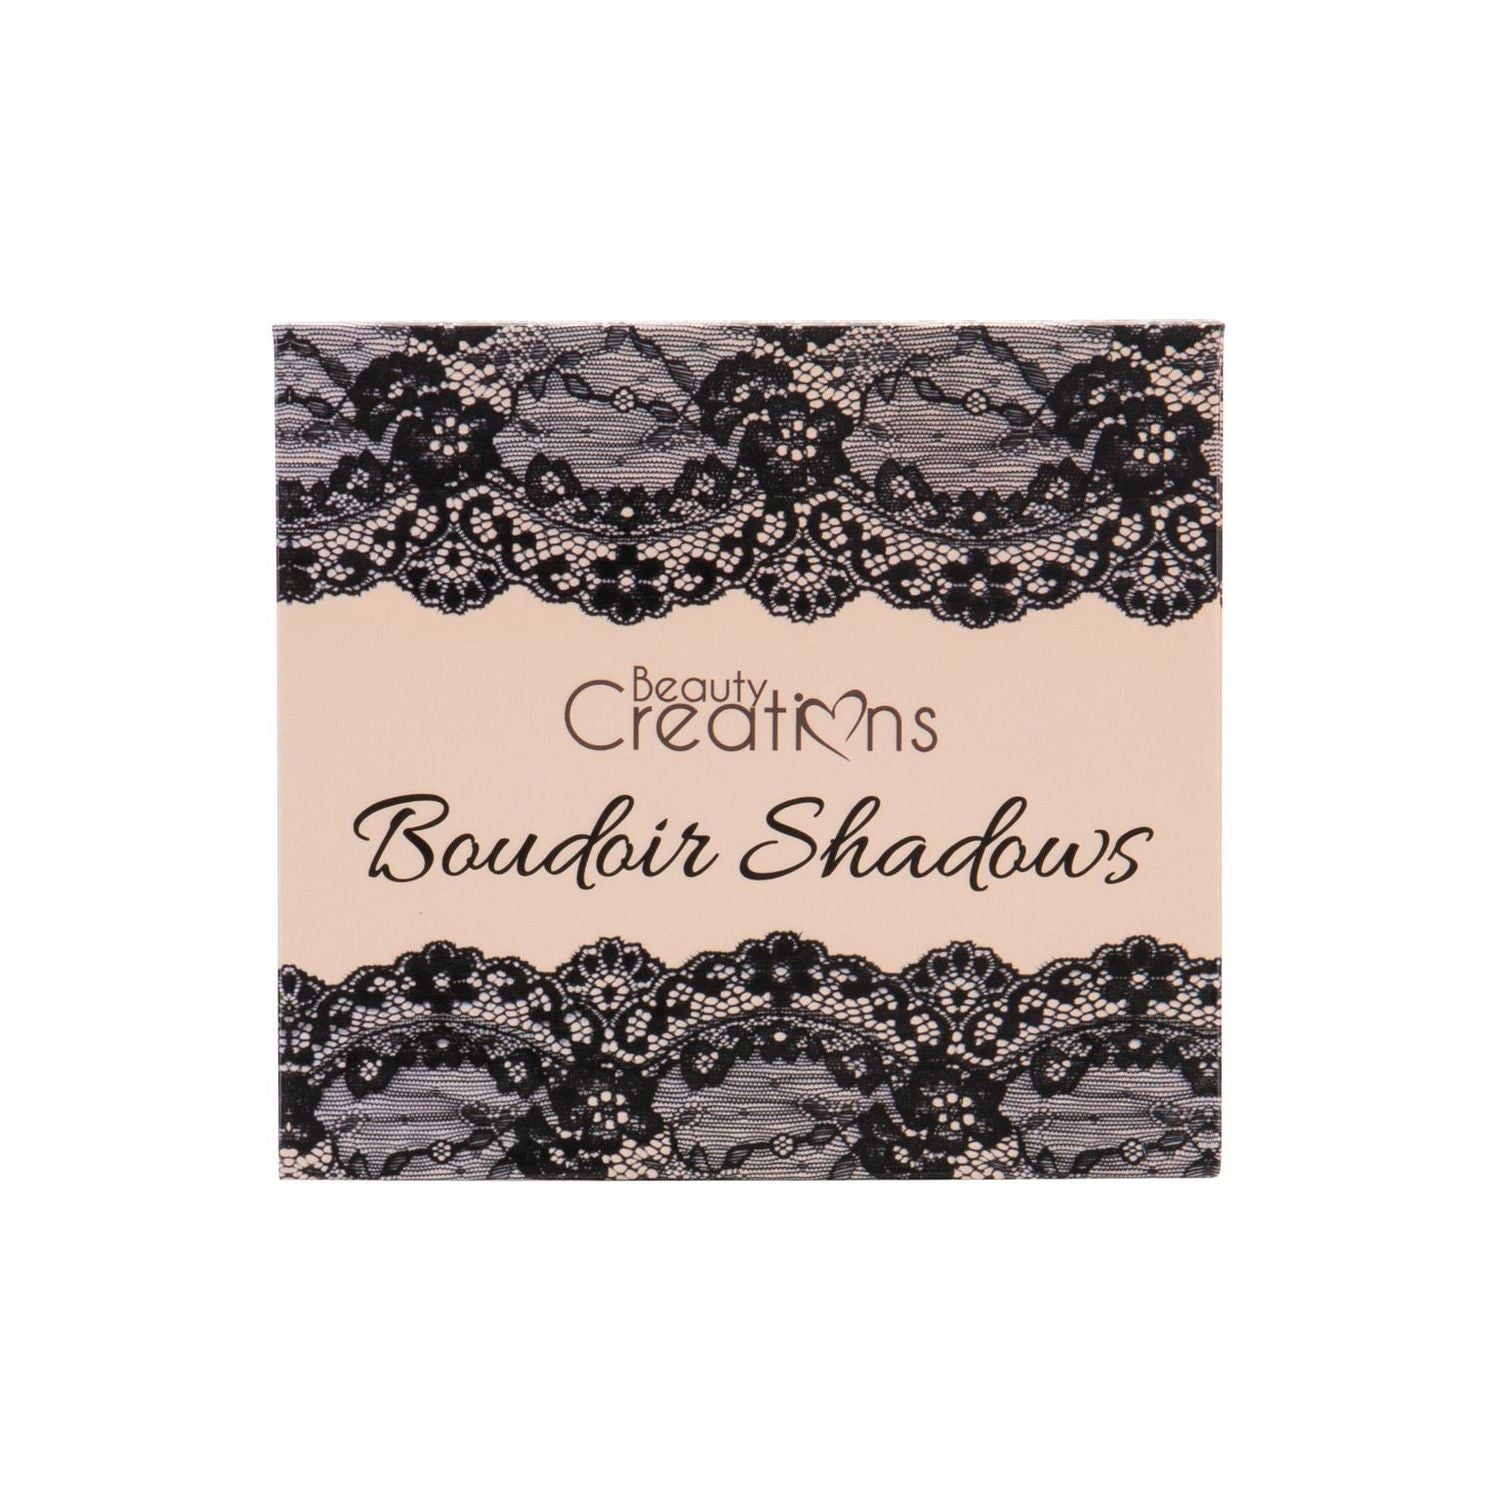 Boudoir Shadows Beauty Creations